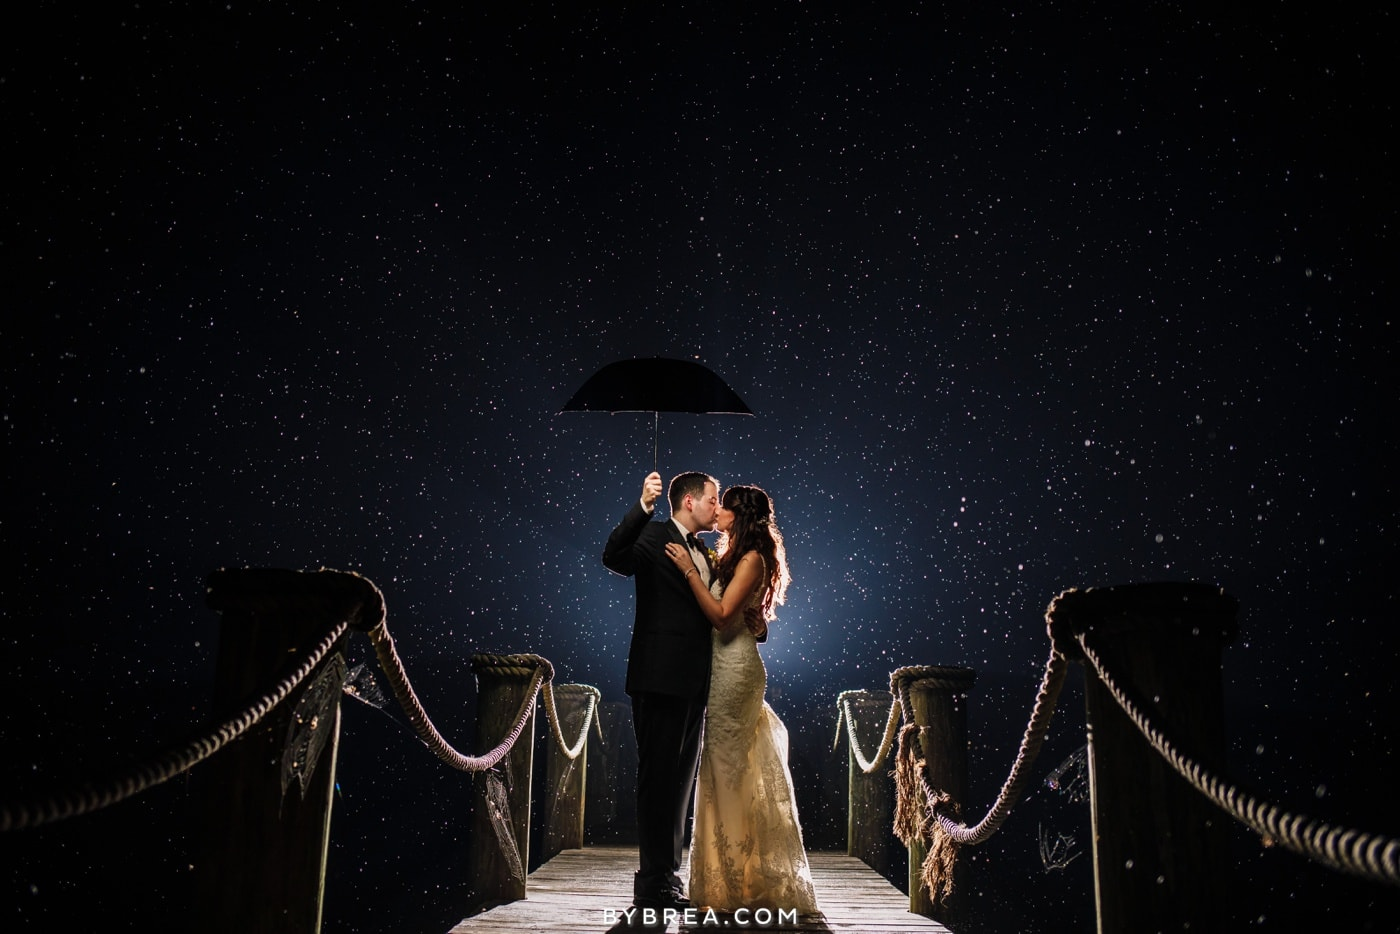 Rain on your wedding day at on a dock at night